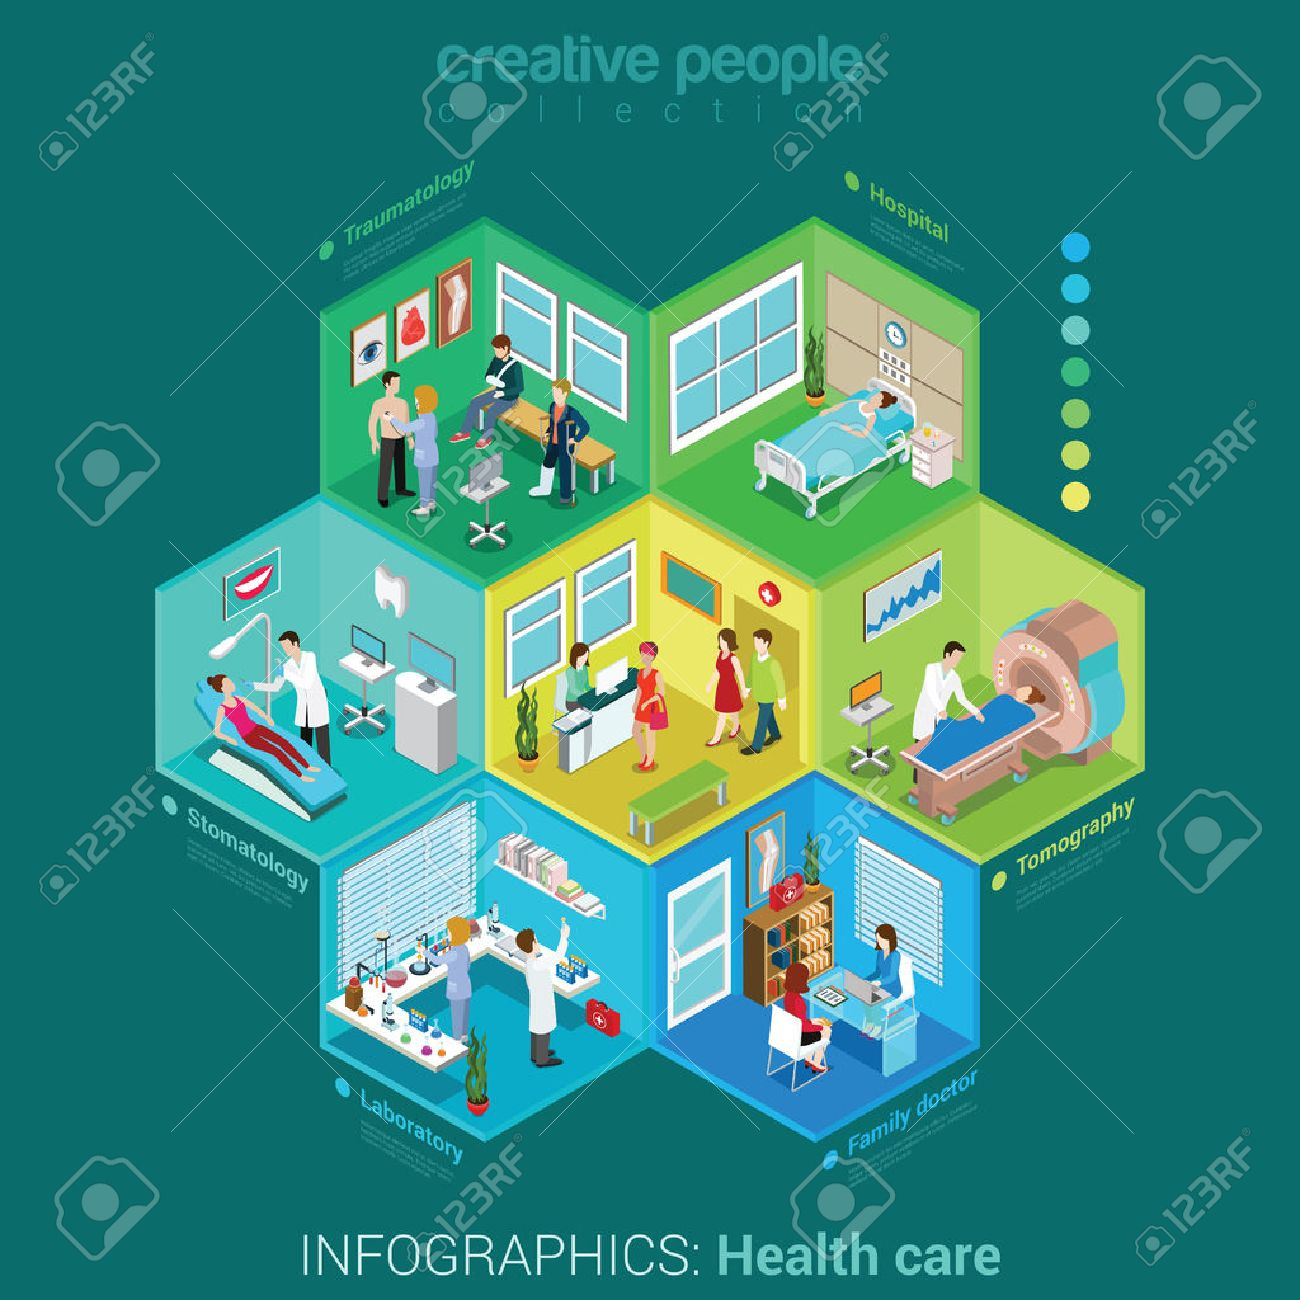 Flat 3d isometric health care hospital laboratory family doctor nurse infographic concept vector. Abstract interior room cell patient customer client visitor medical staff. Creative people collection. Stock Vector - 48576381